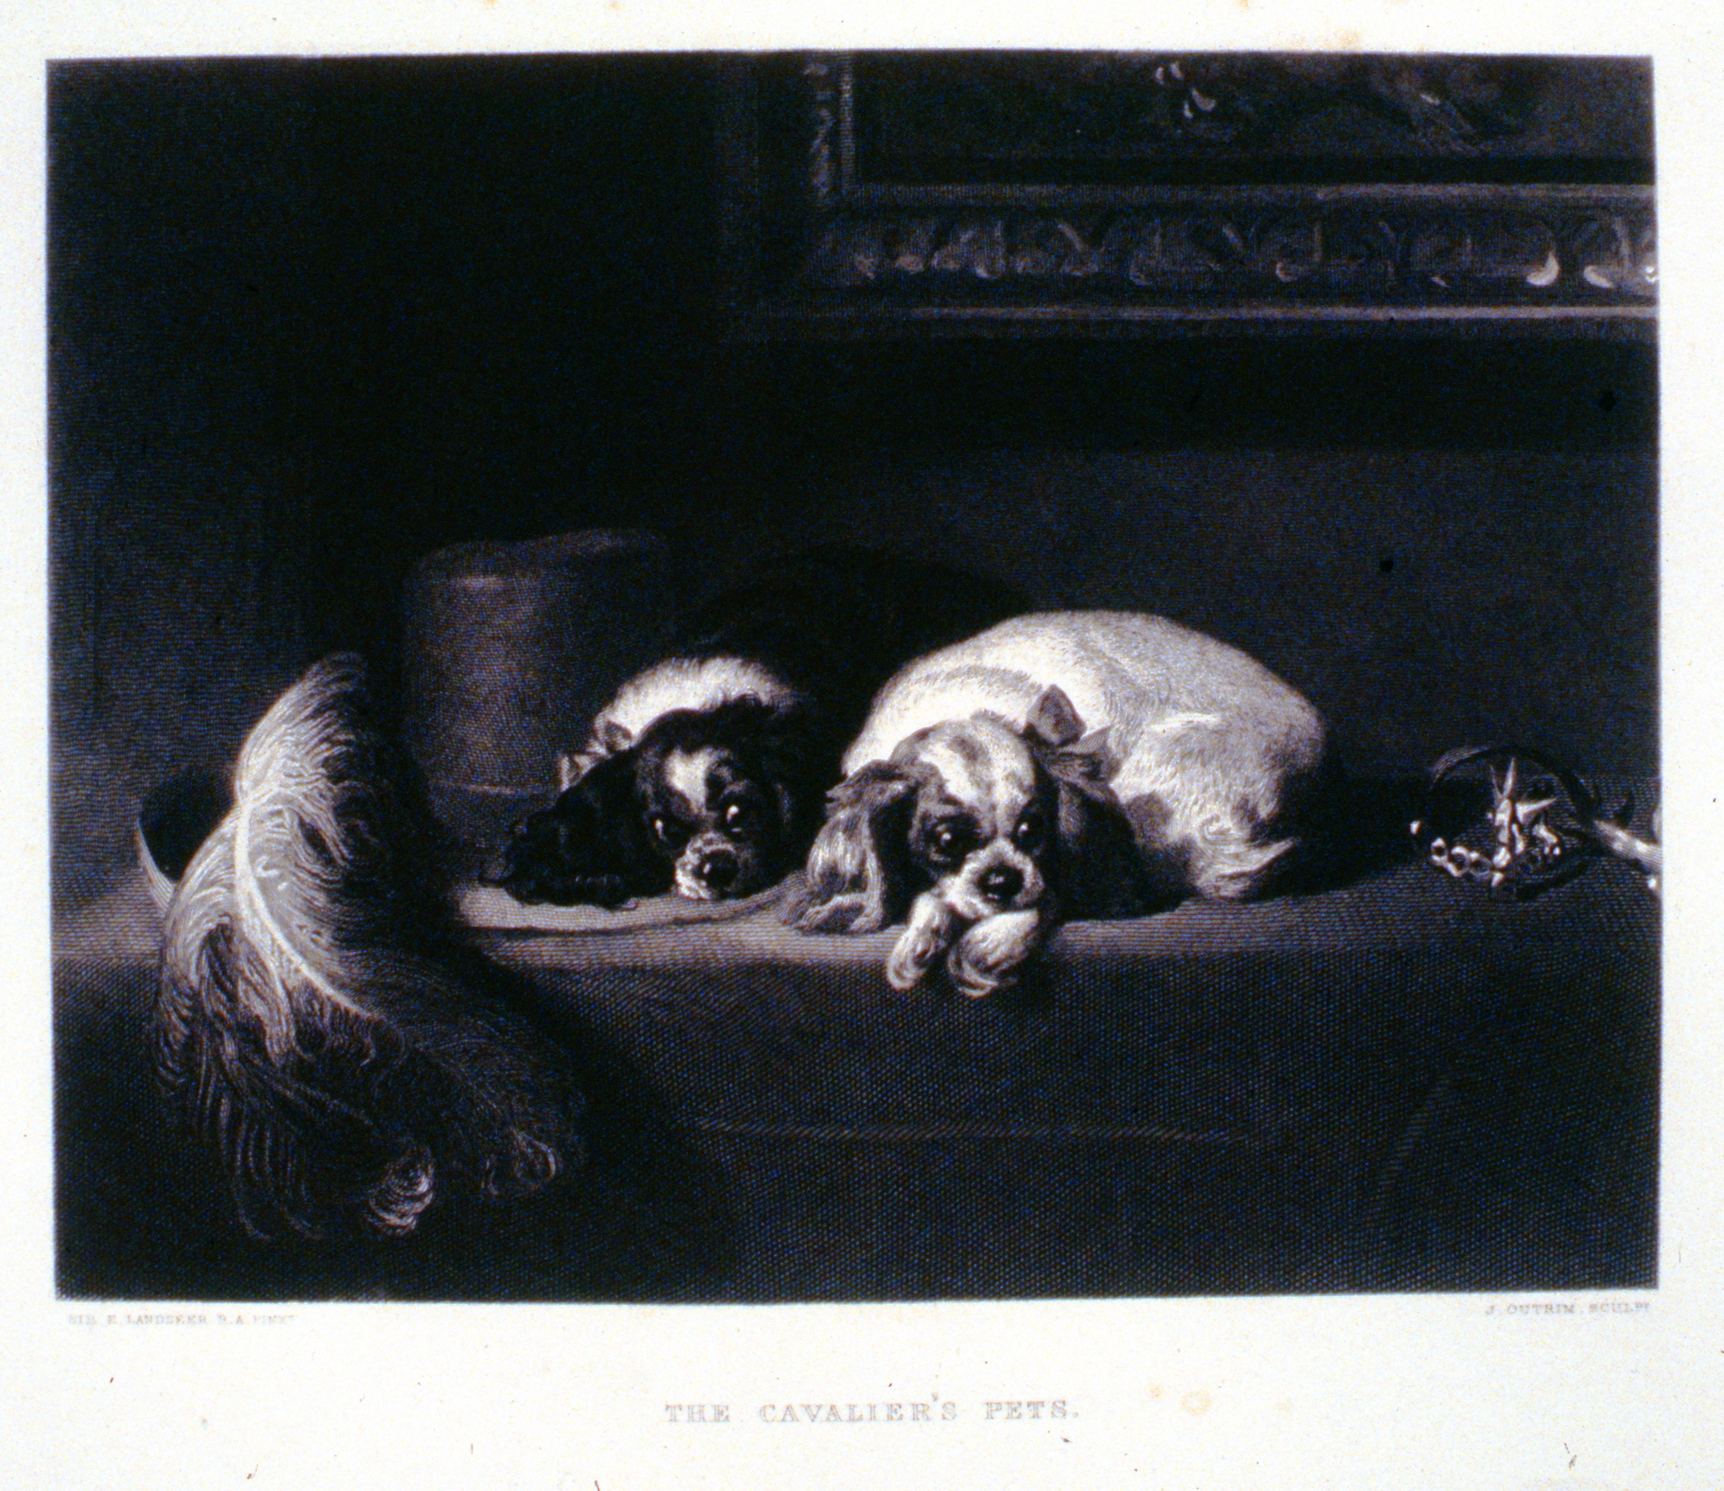 The Cavalier's Pets , c. late 19th Century, J. Outrim, steel engraving, 18.5 cm x 24 cm, 1996.08.09, gift of Yvonne Adams